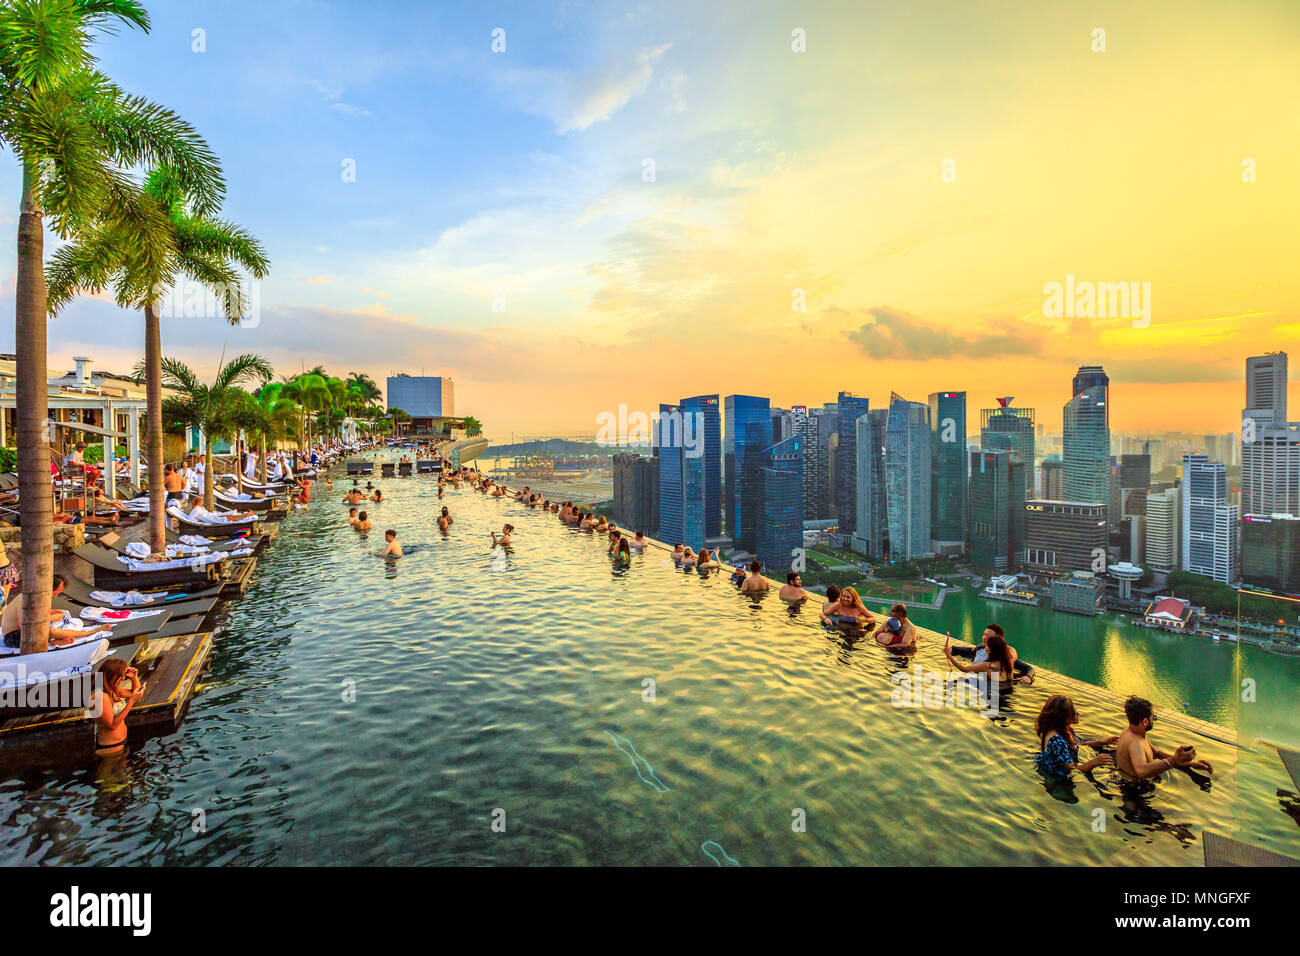 Singapore - May 3, 2018: Infinity Pool at sunset of Skypark that tops the Marina Bay Sands Hotel and Casino from rooftop of La Vie Club Lounge on 57th - Stock Image